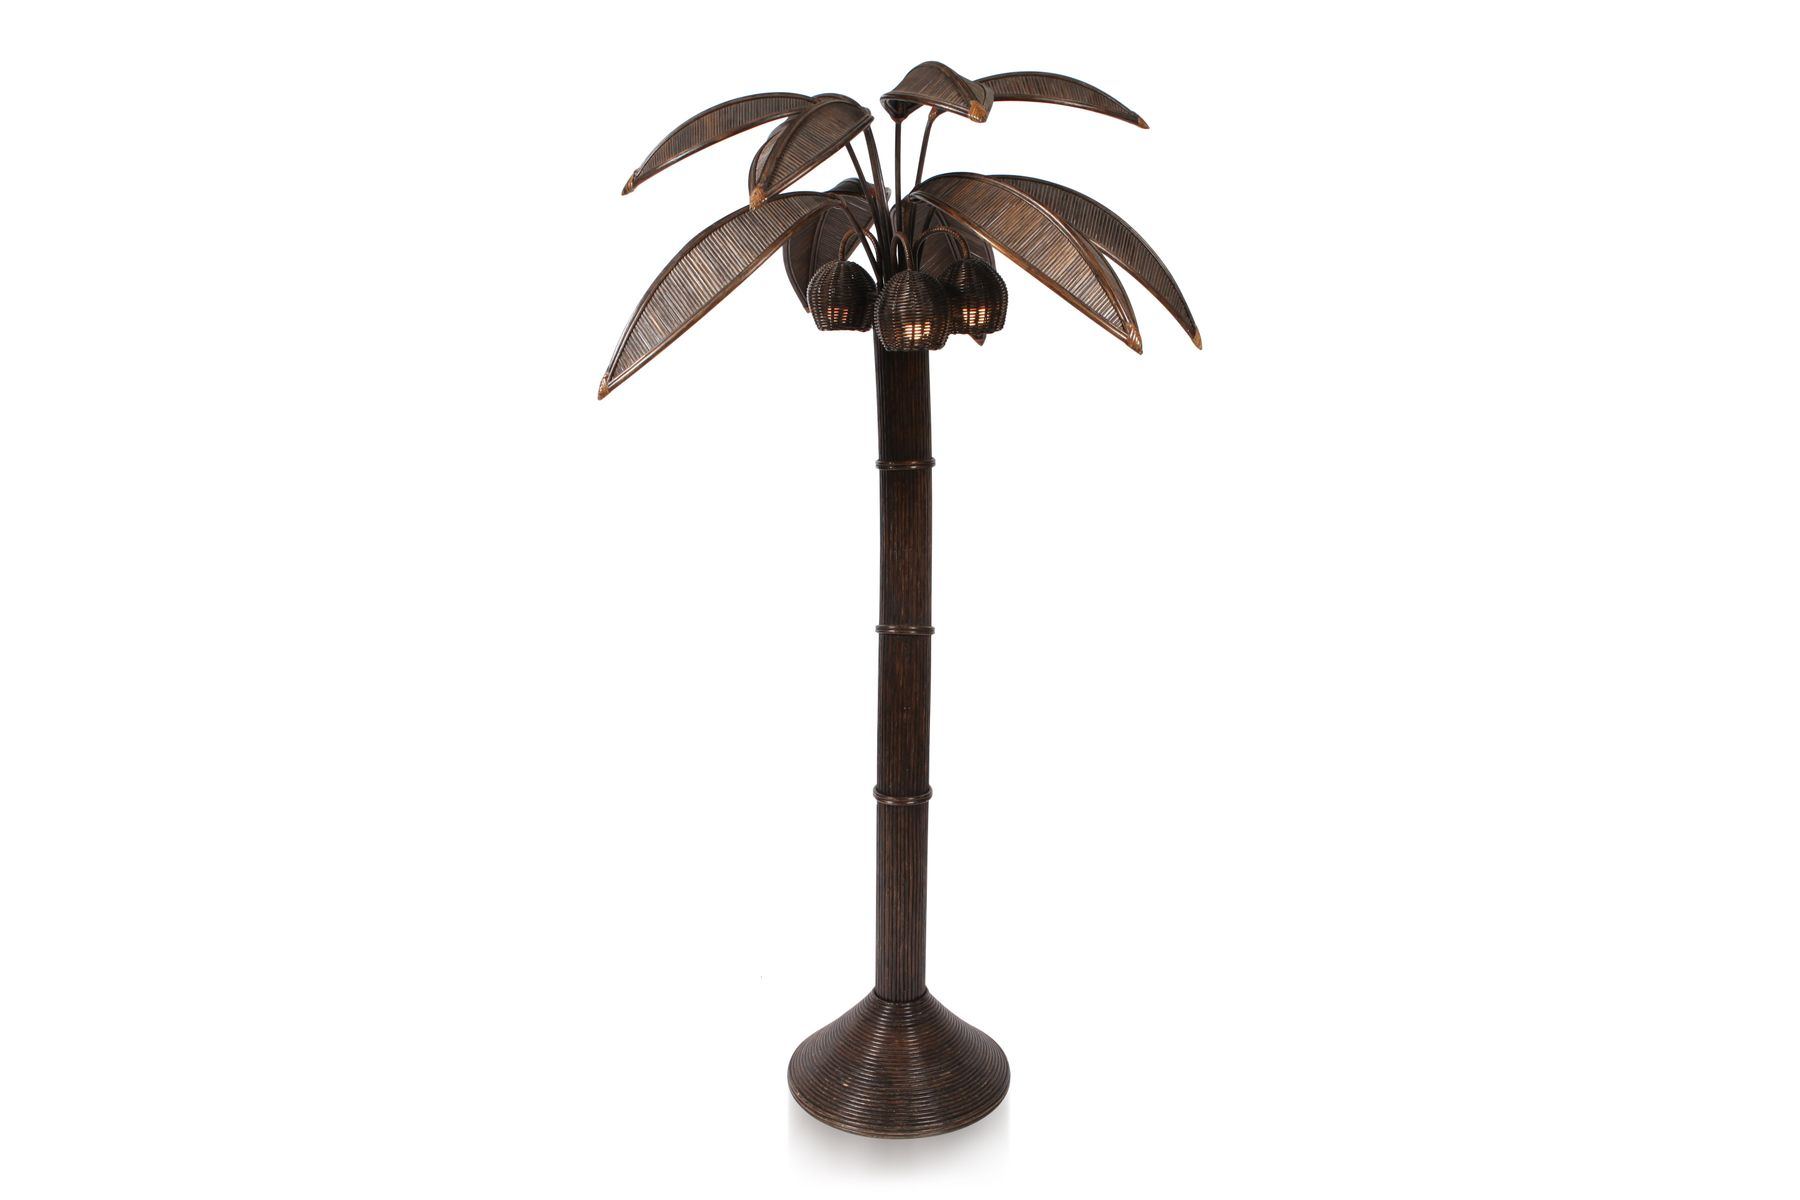 Palm tree floor lamp by mario lopez 1970s for sale at pamono palm tree floor lamp by mario lopez 1970s 6 588100 price per piece aloadofball Image collections